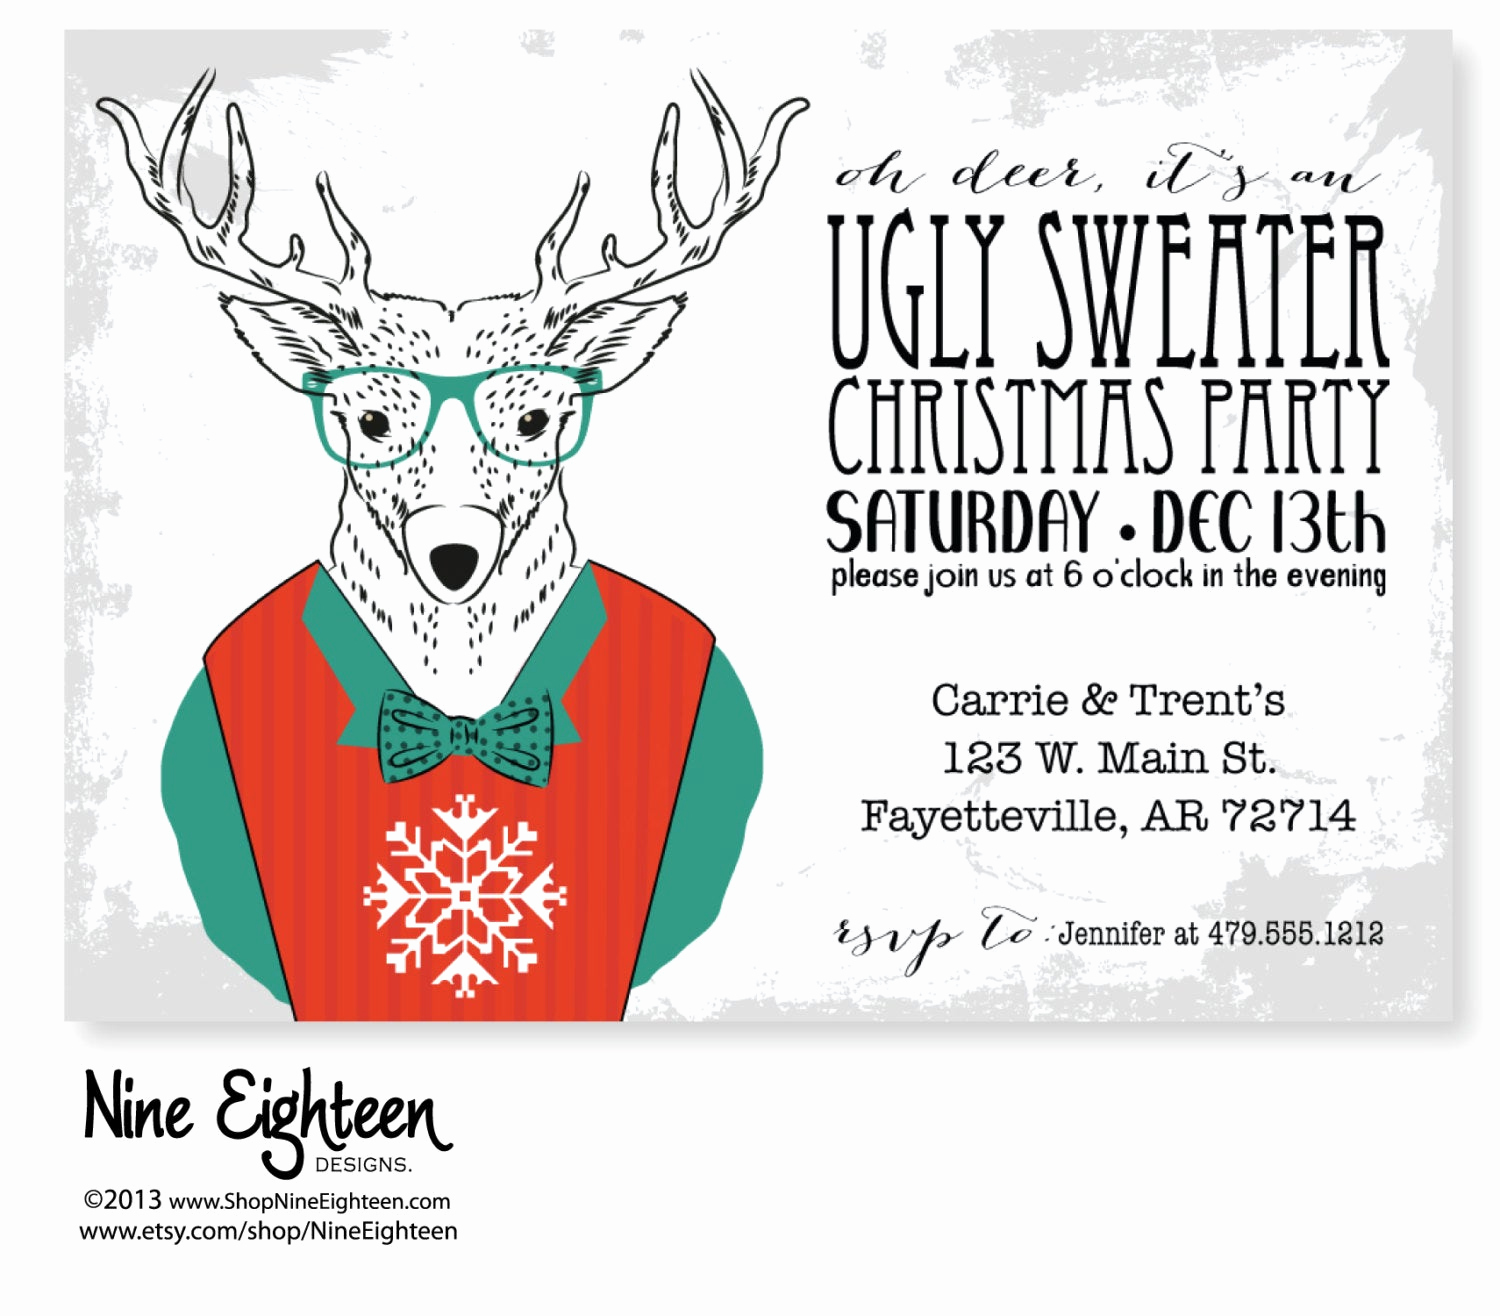 Ugly Christmas Party Invitation Unique Christmas Invitation for Ugly Sweater Party by Nineeighteen